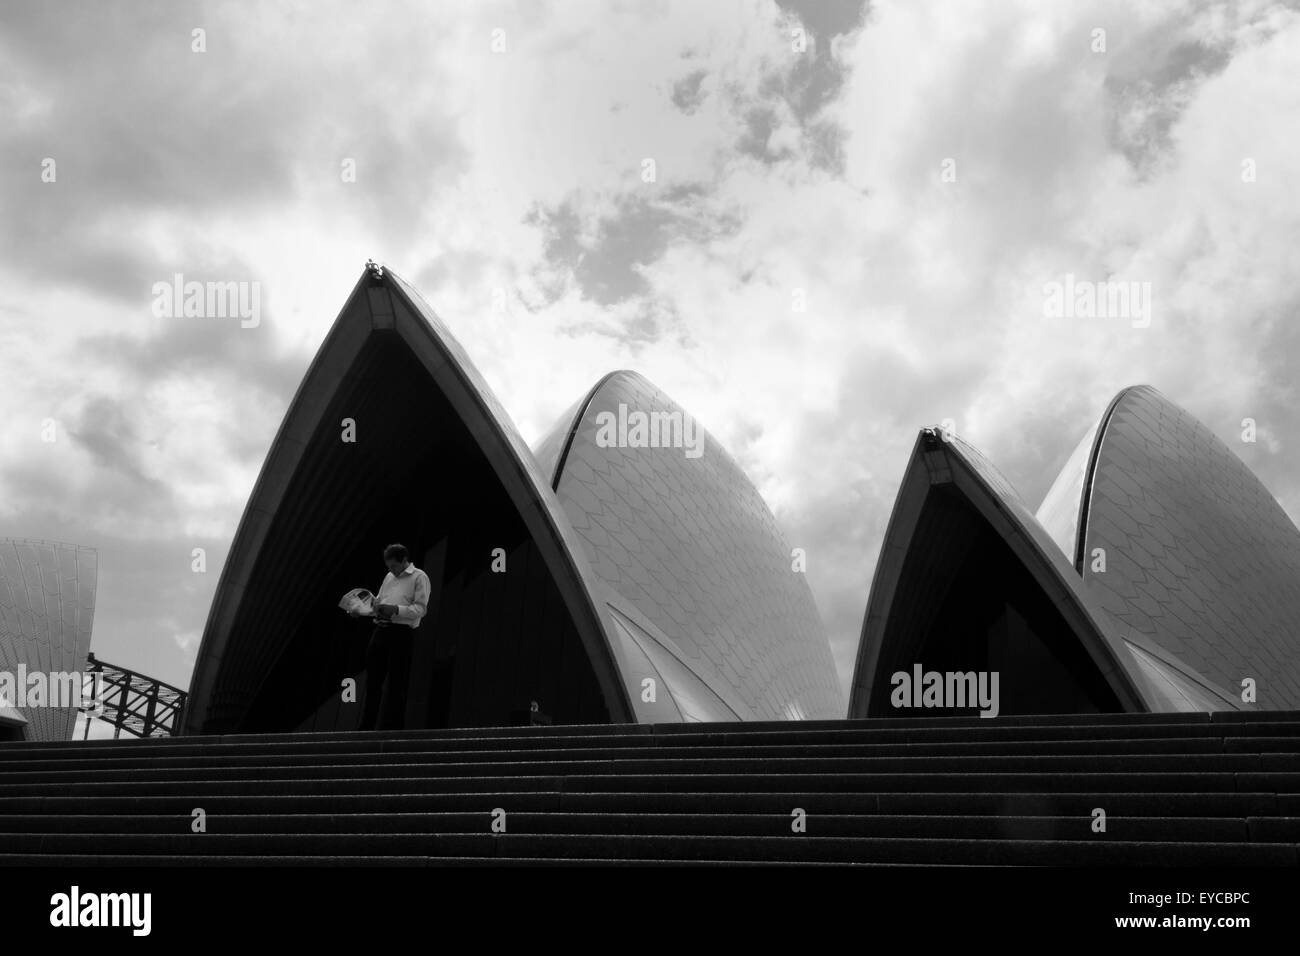 sydney opera house close up in black and white EYCBPC - 40+ Black And White Pictures Of Sydney Opera House  Background